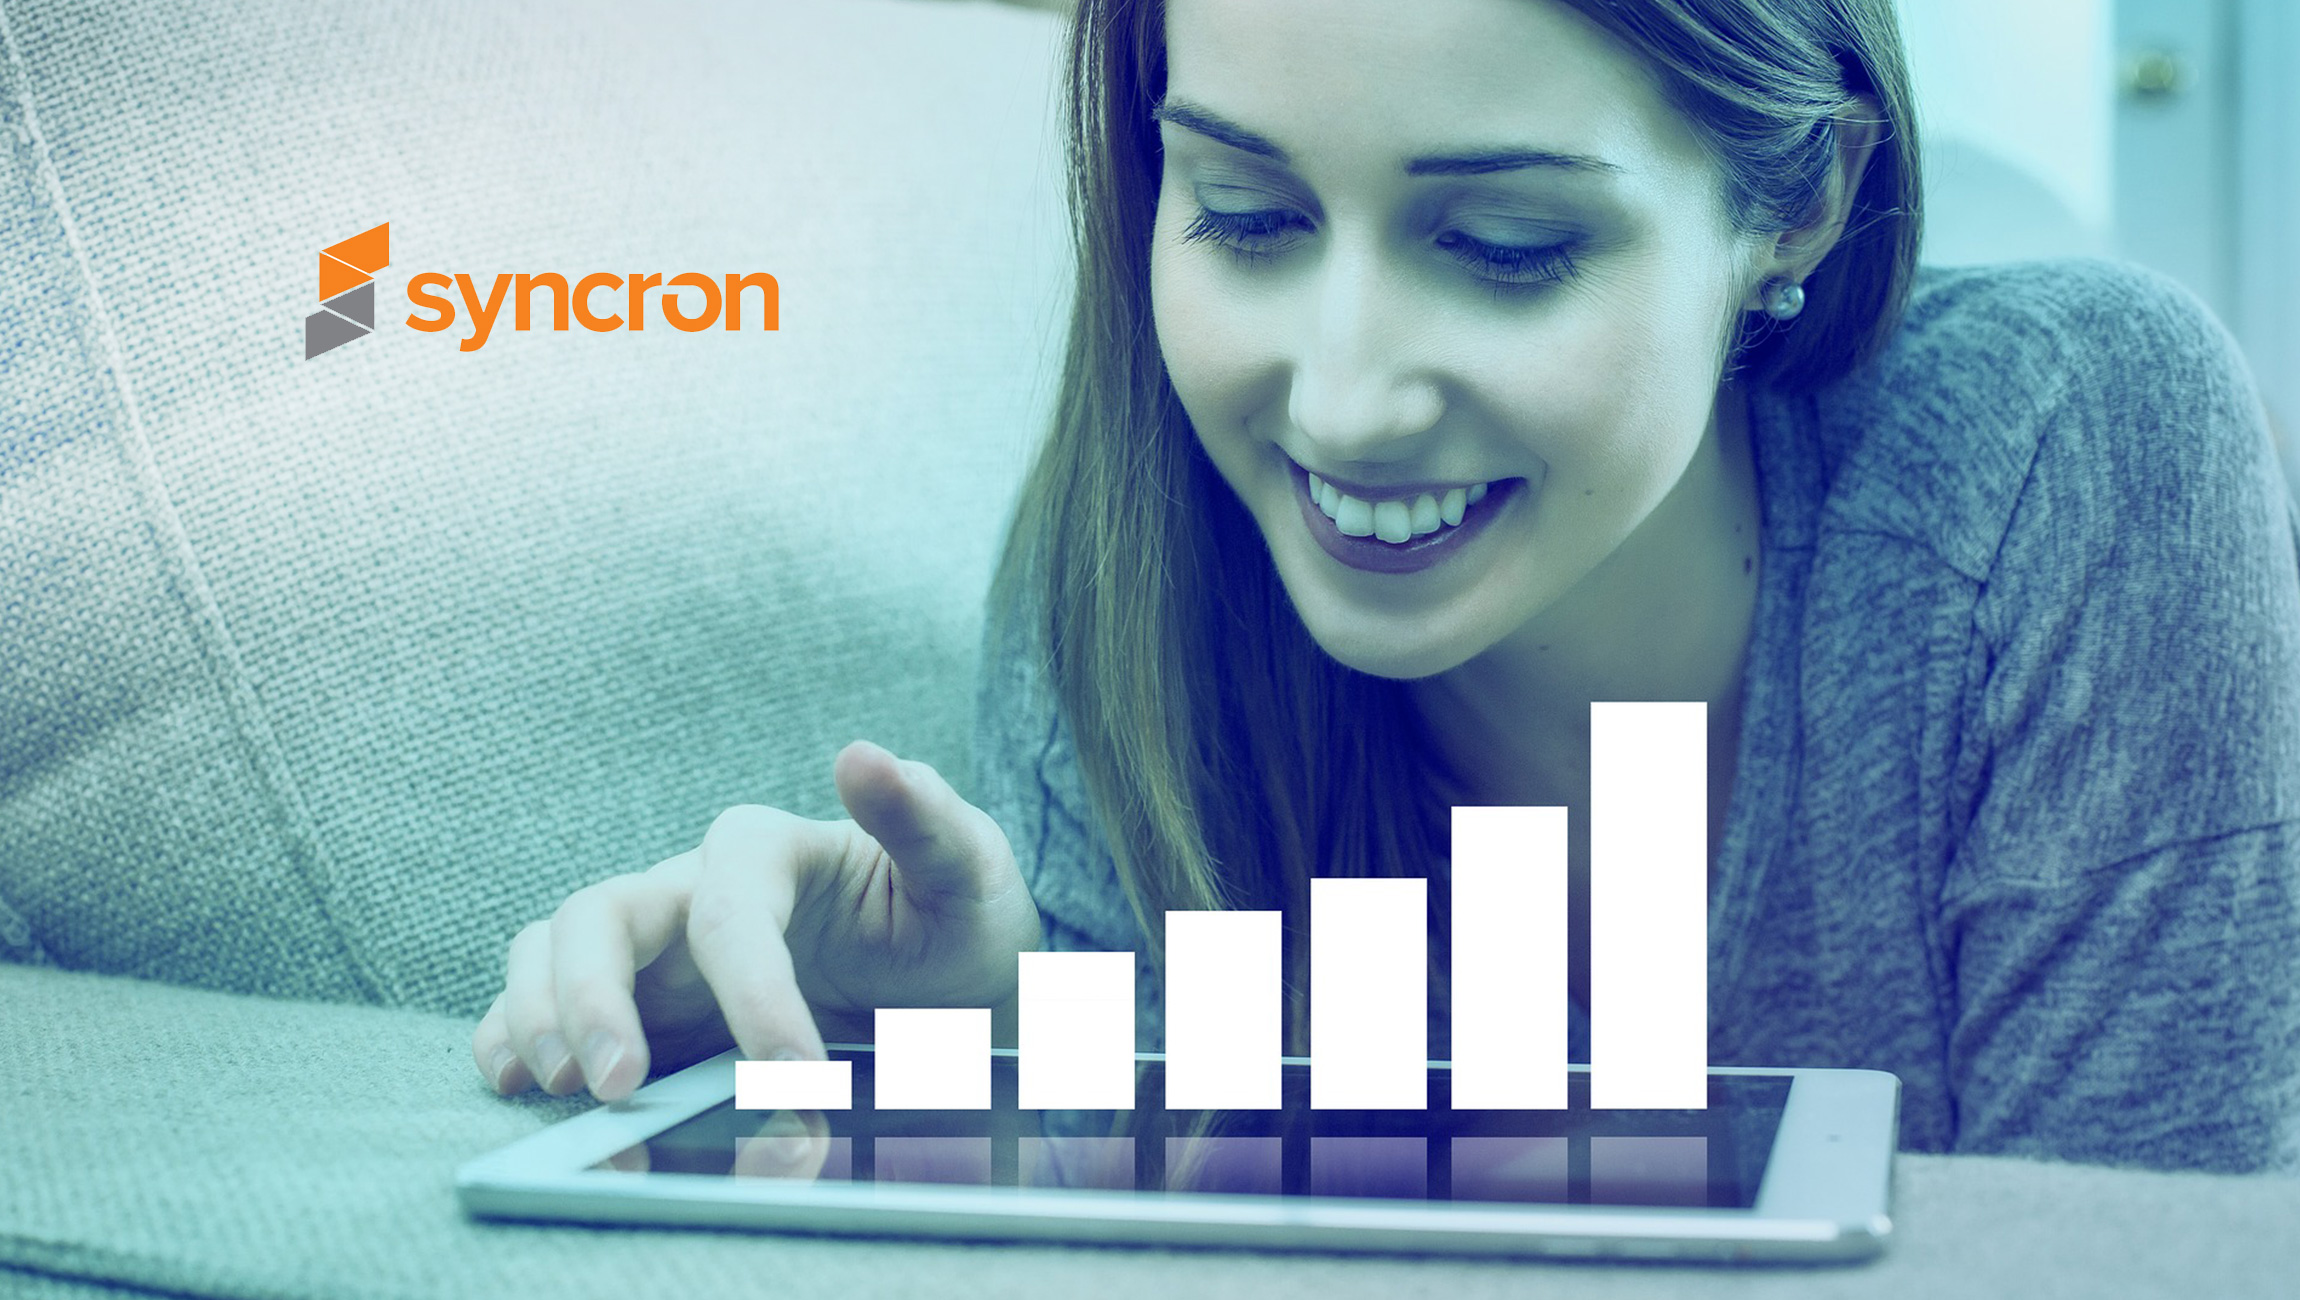 Syncron Sets the Industry Standard with New Learning Platform